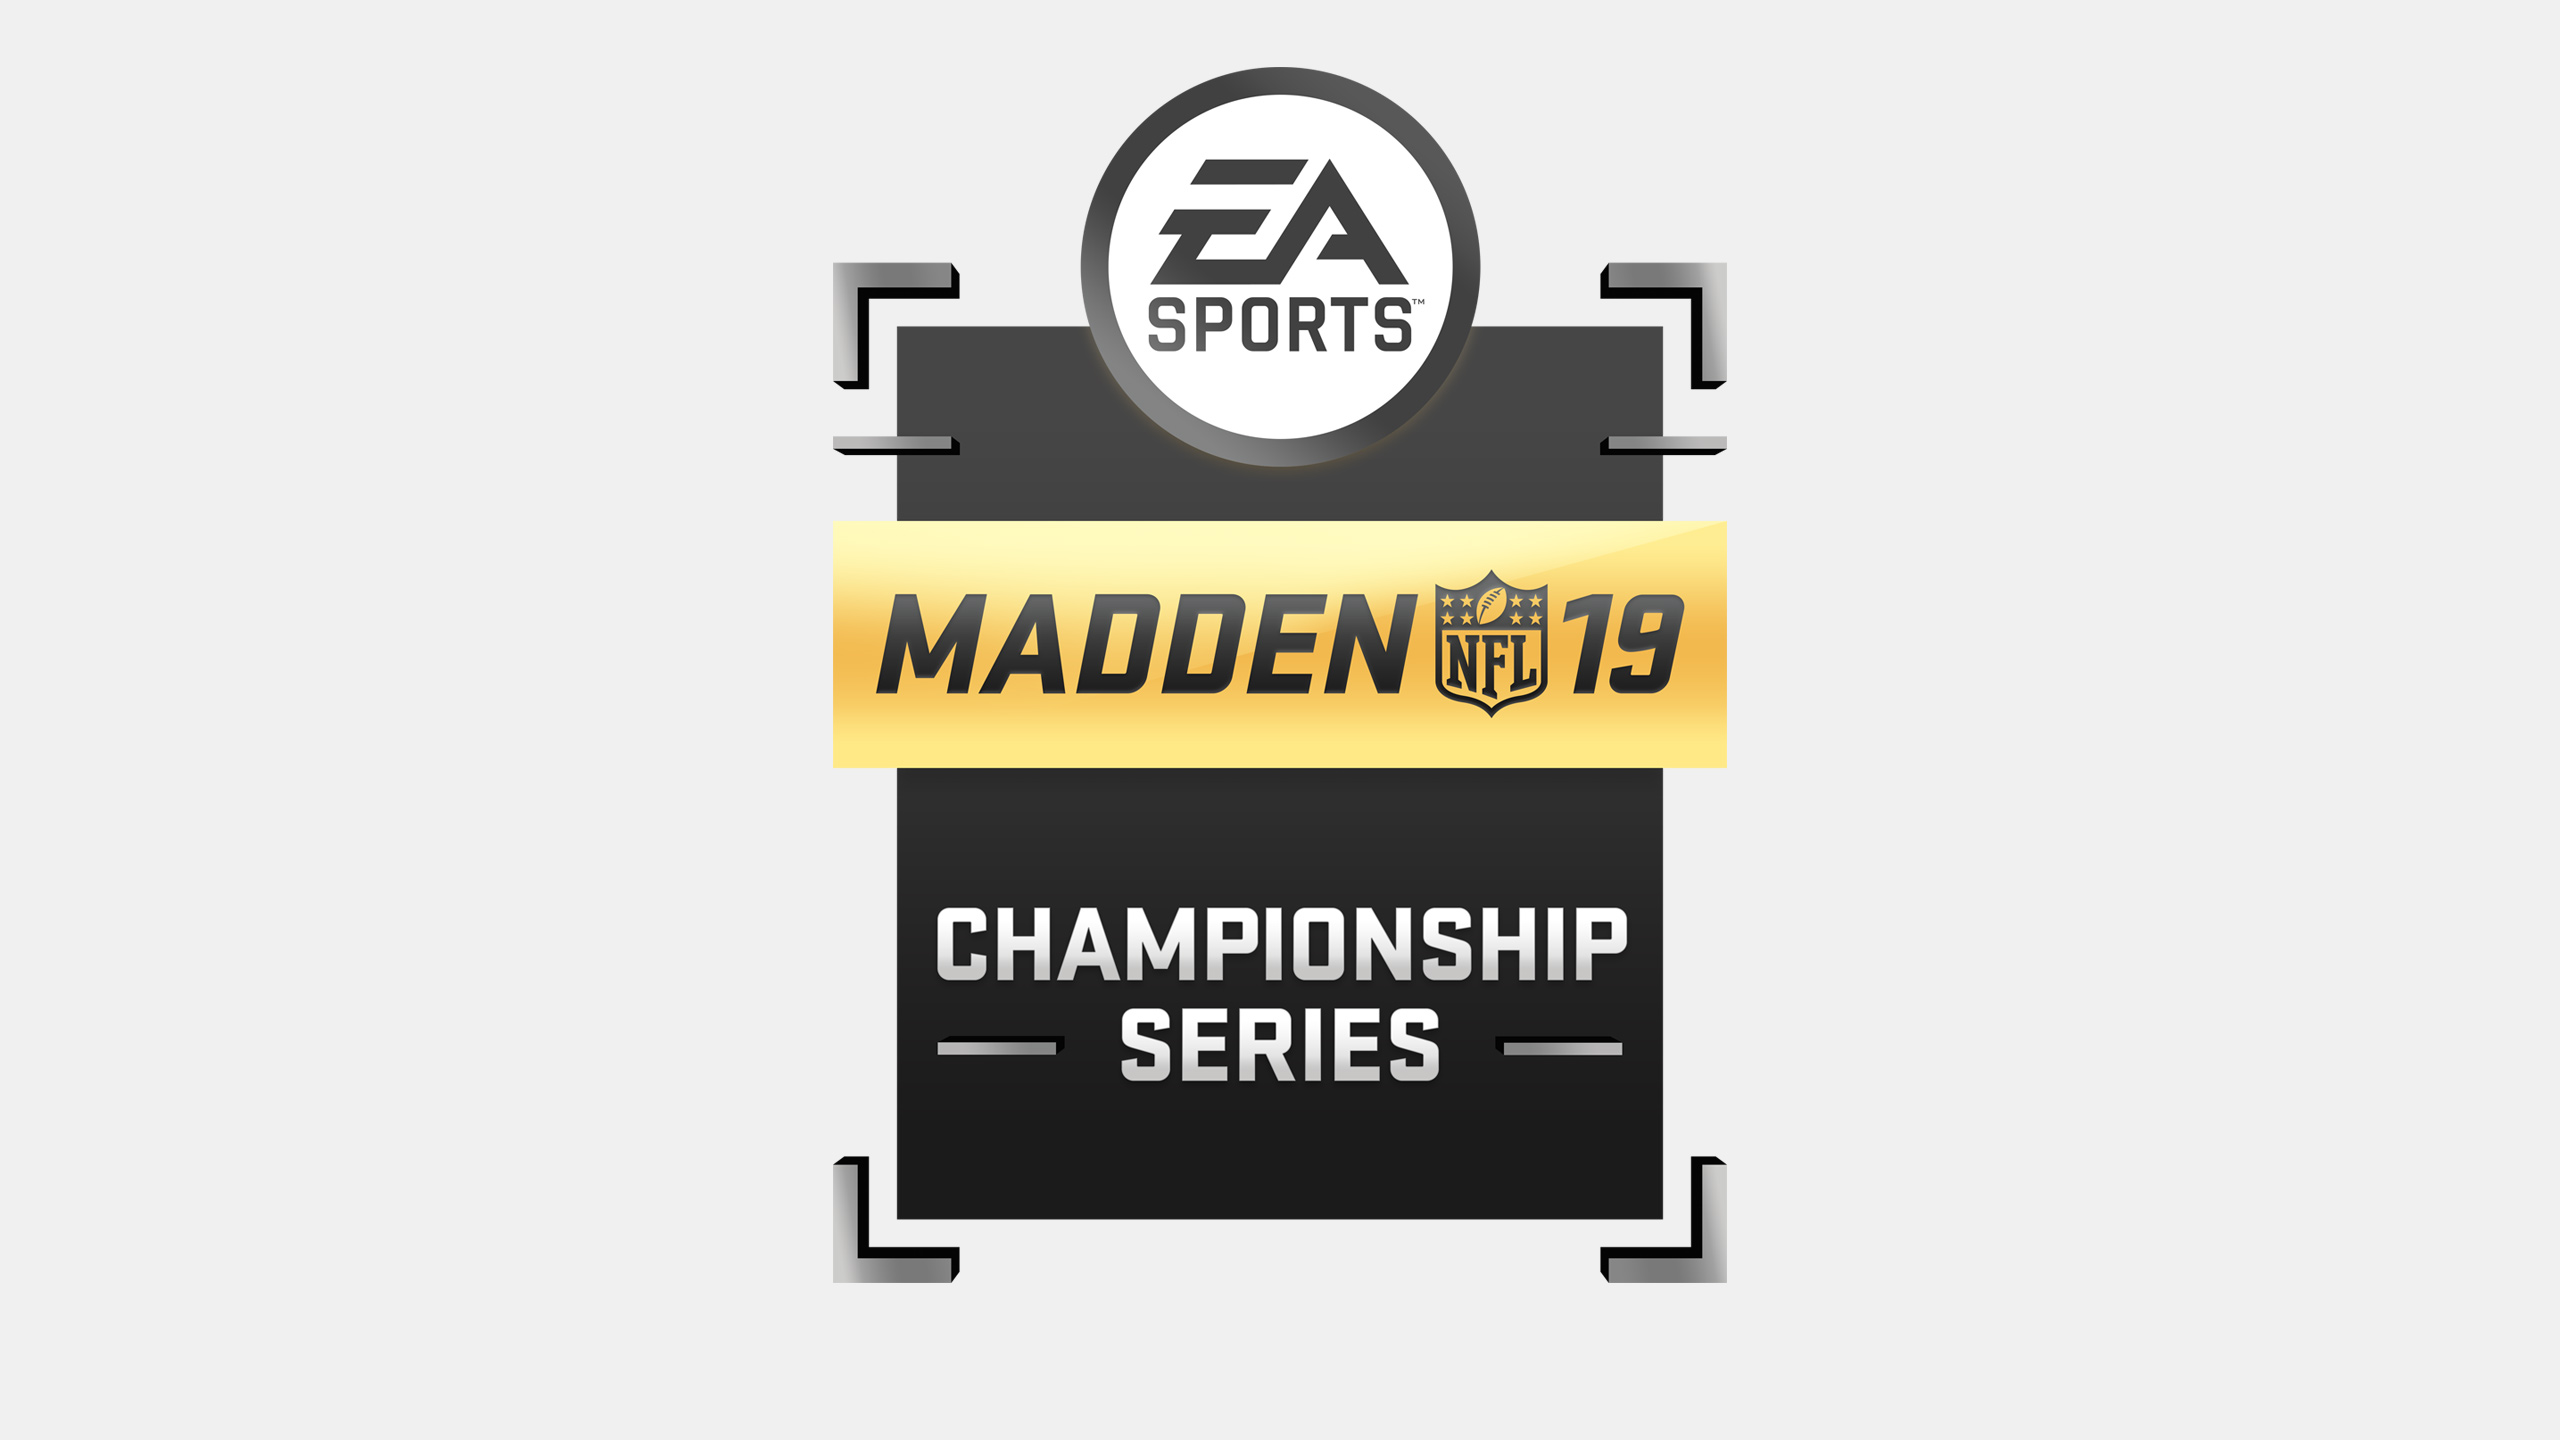 EA SPORTS Madden NFL 19 Last Chance Qualifier